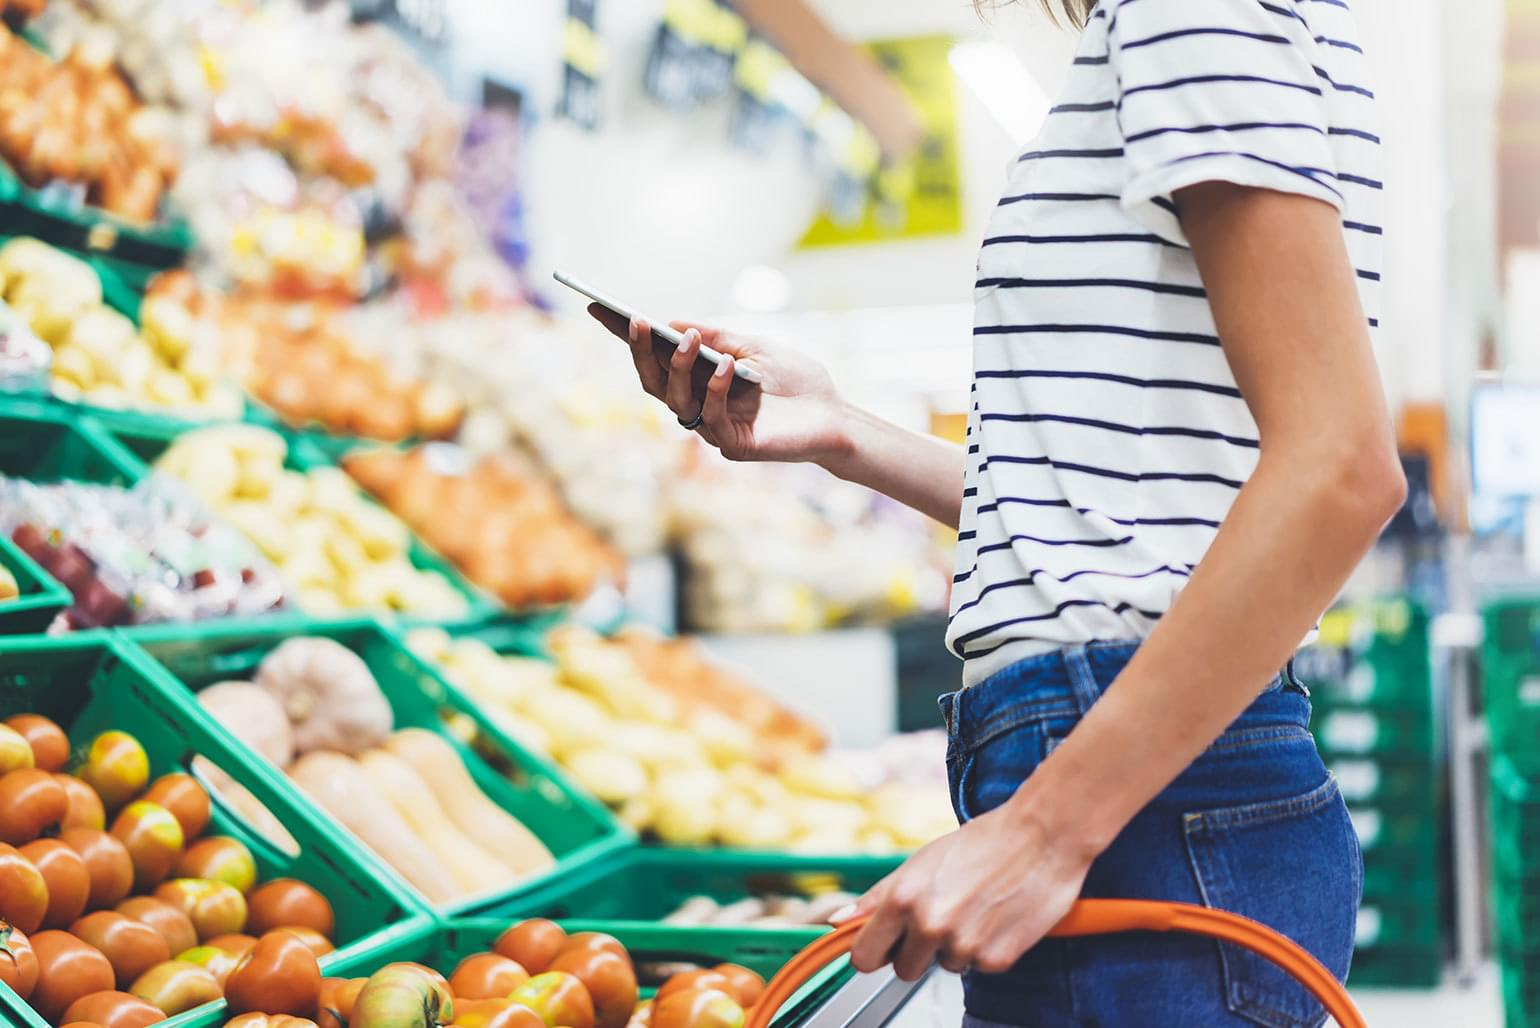 Young woman using smart phone in supermarket to shop for healthy food.